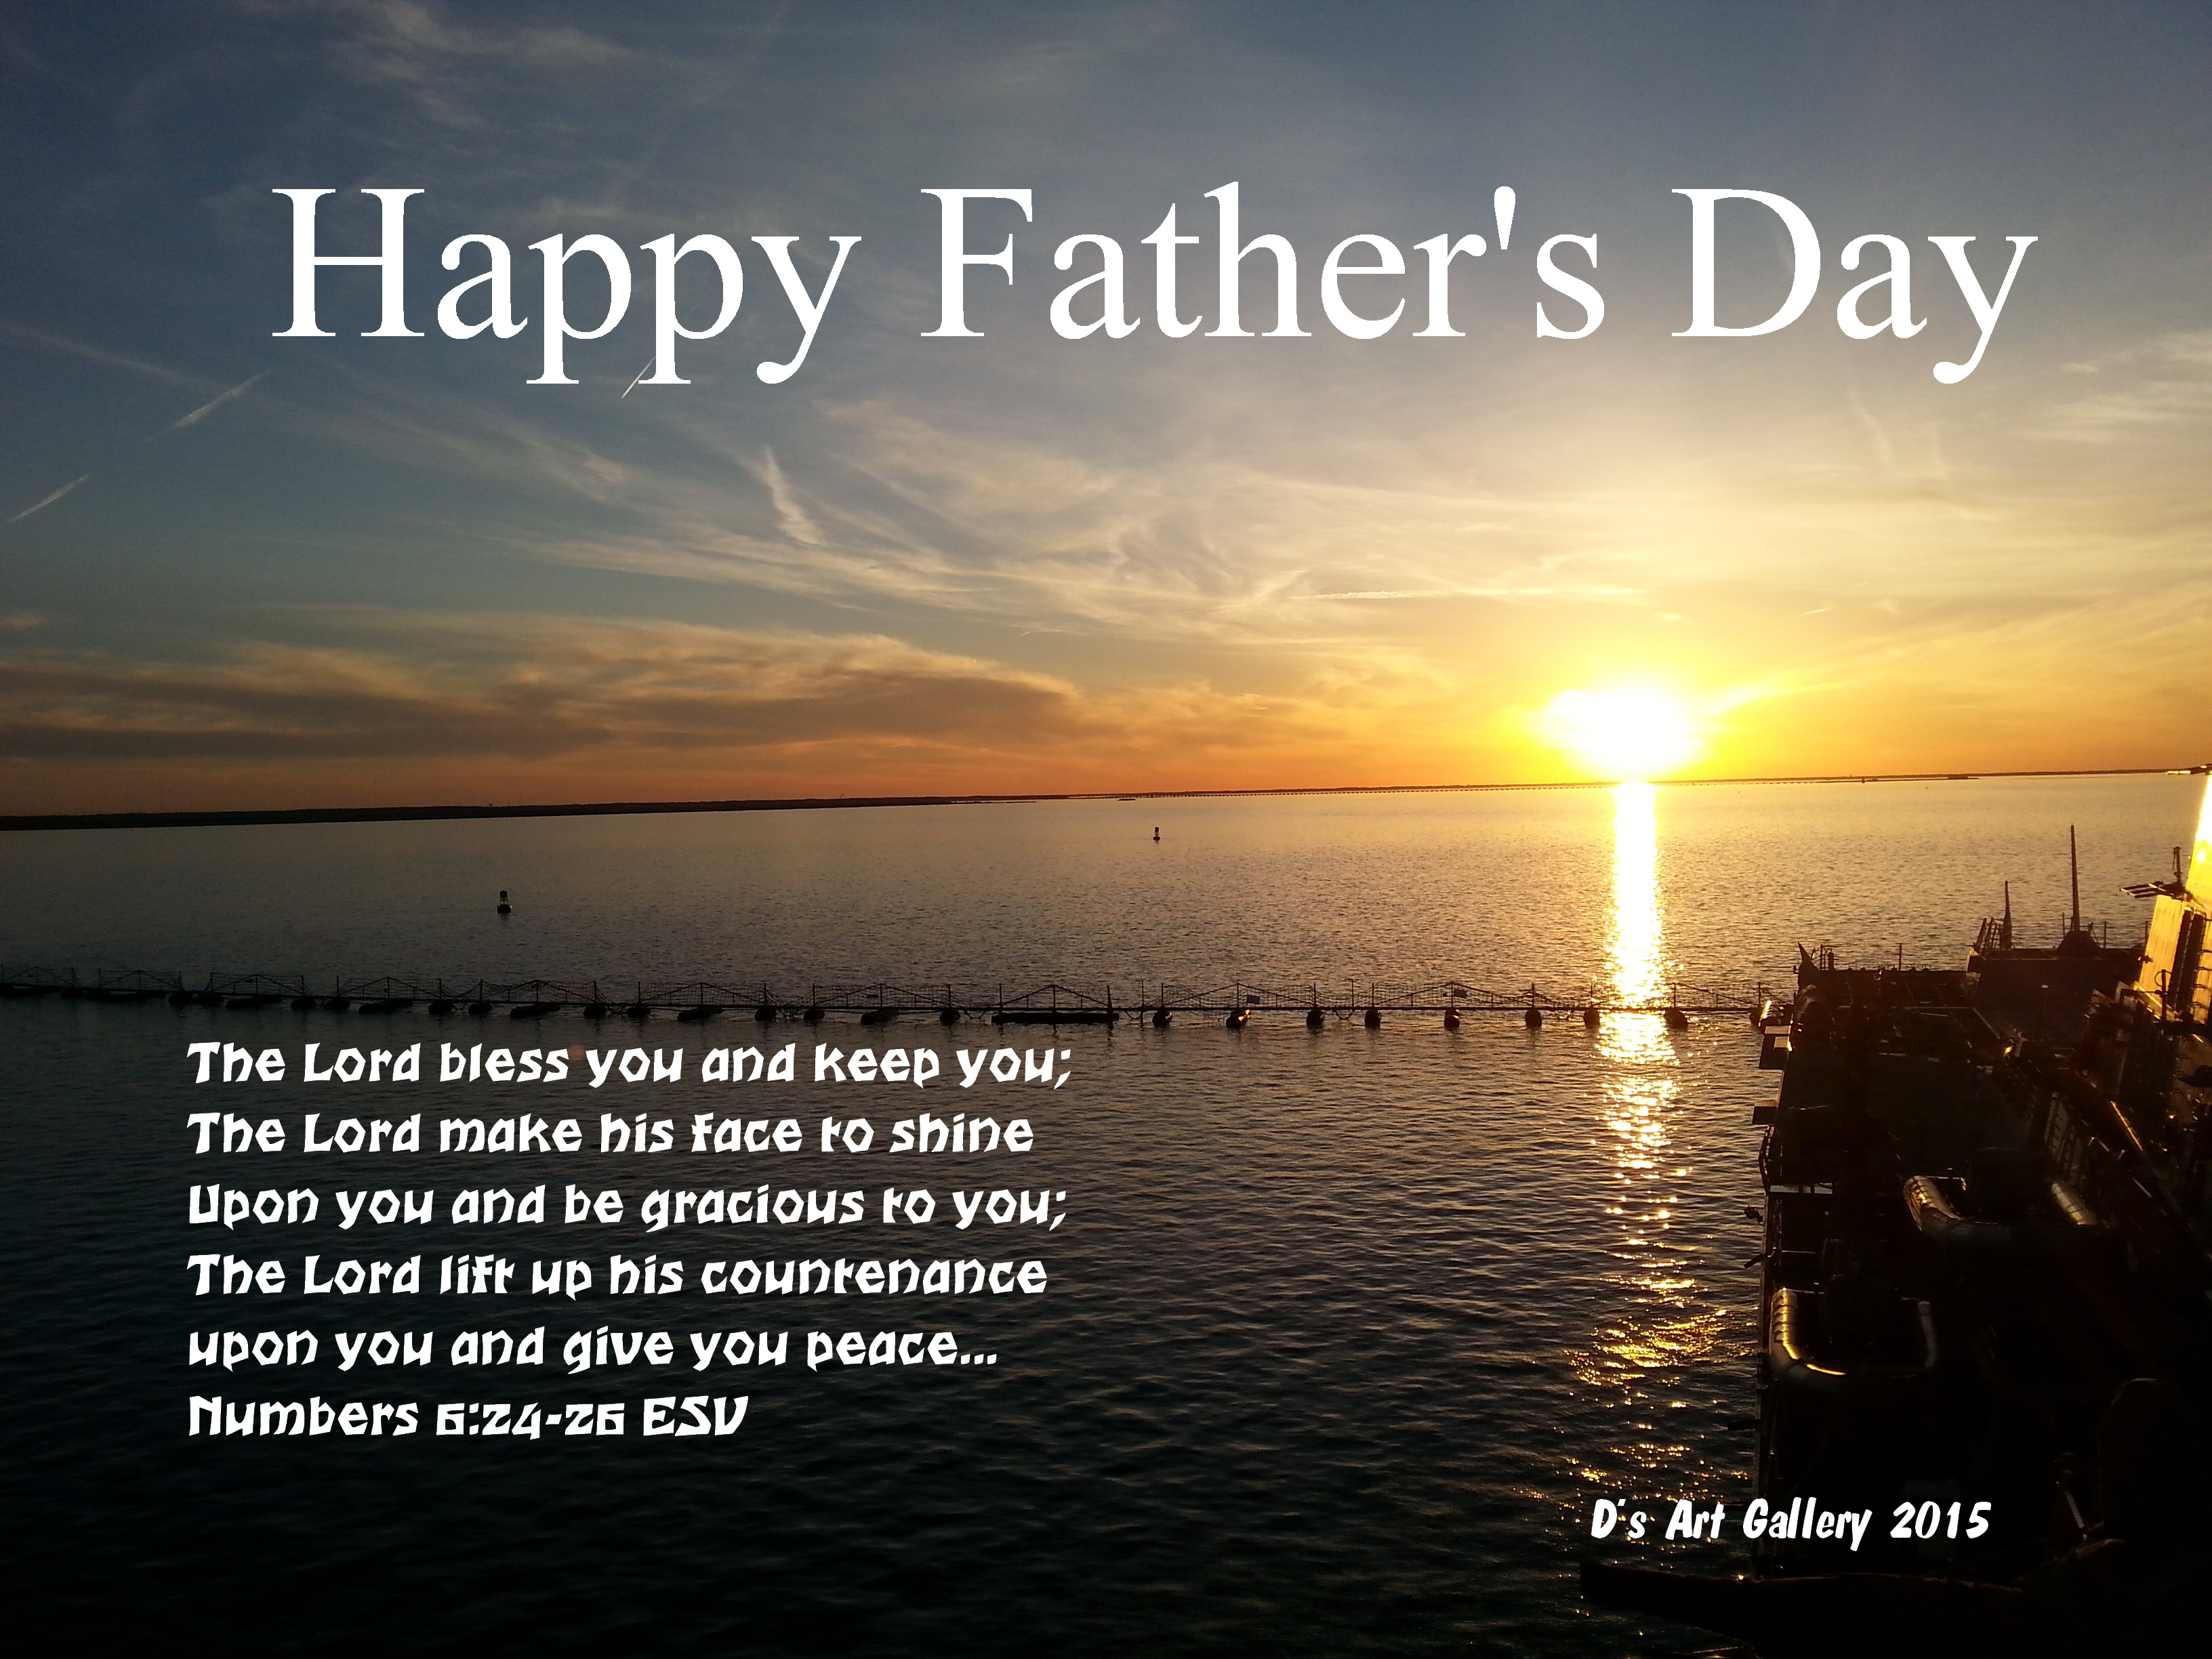 FATHER'S DAY BLESSING (Photo by Pastor Davis)